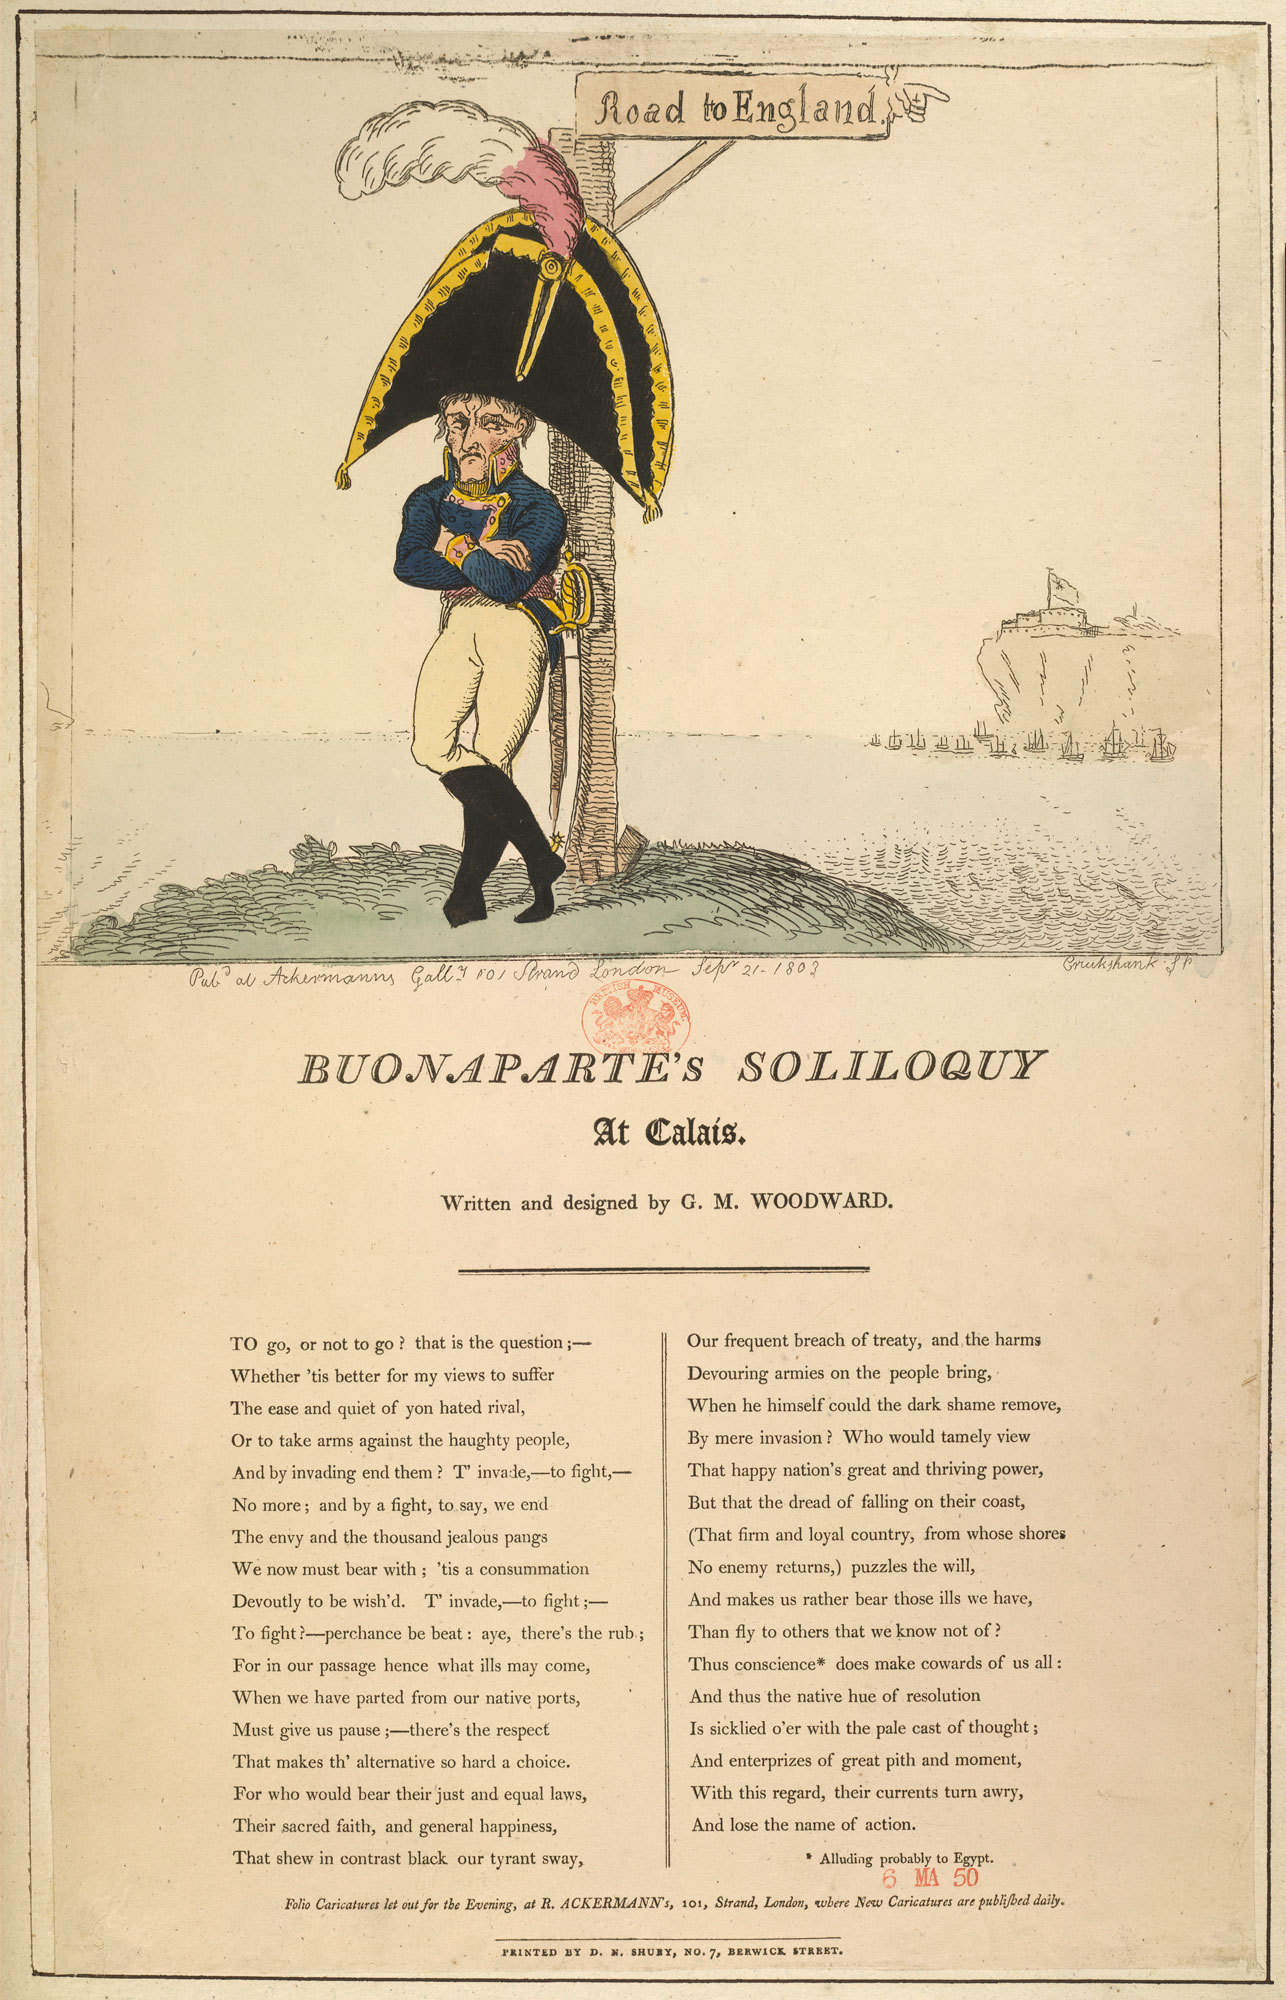 Buonaparte's Soliloquy, from a collection of material relating to the fear of a French invasion